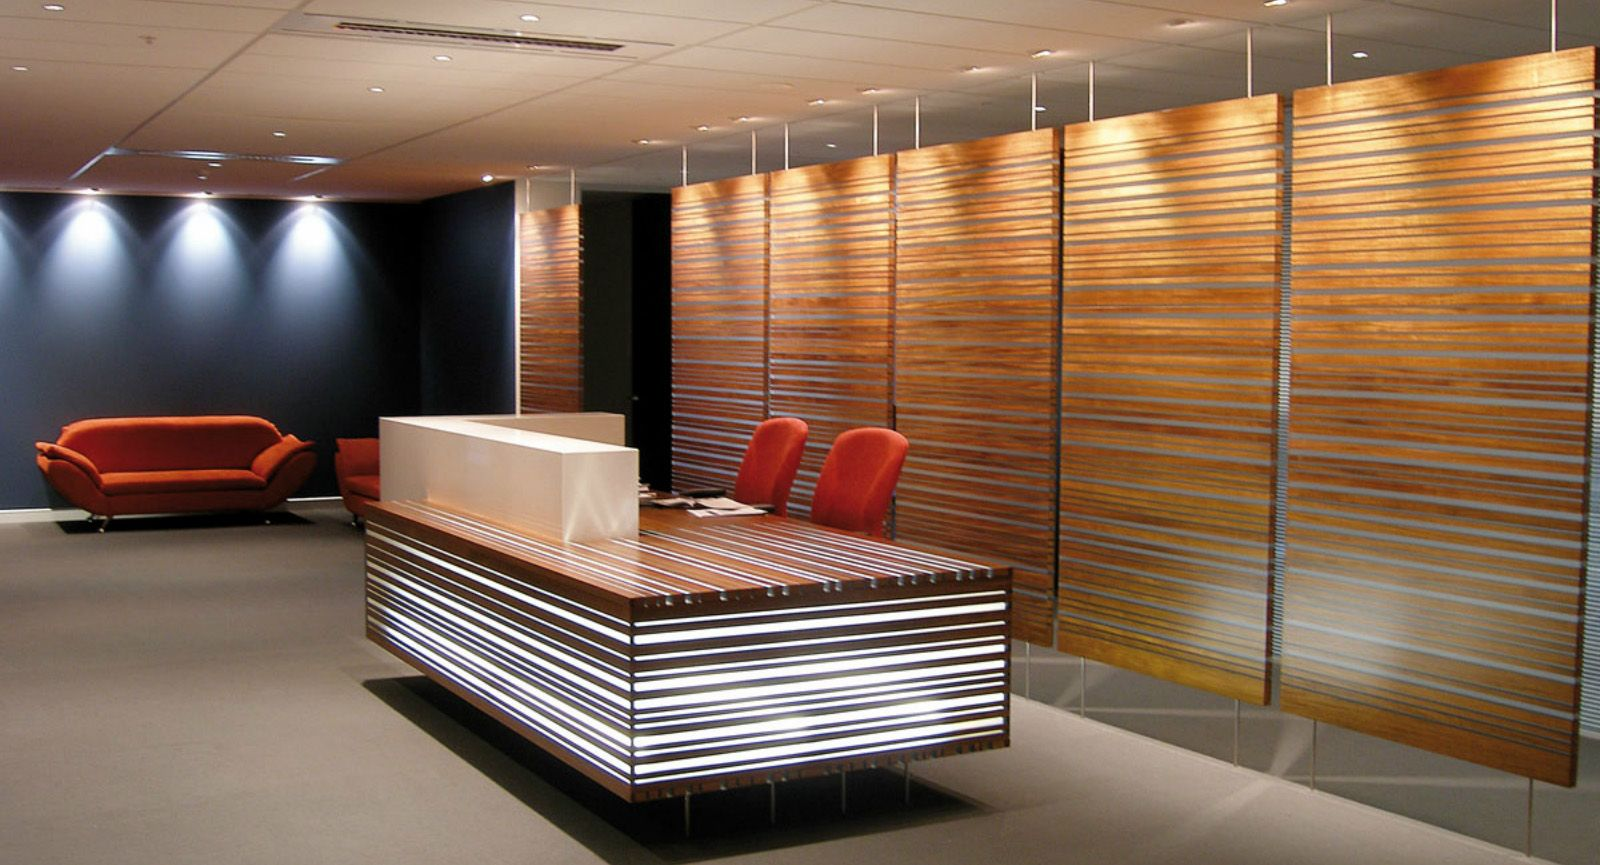 Contemporary panelling interior wood wall paneling designs probably good  design alternative for your design suggestion,